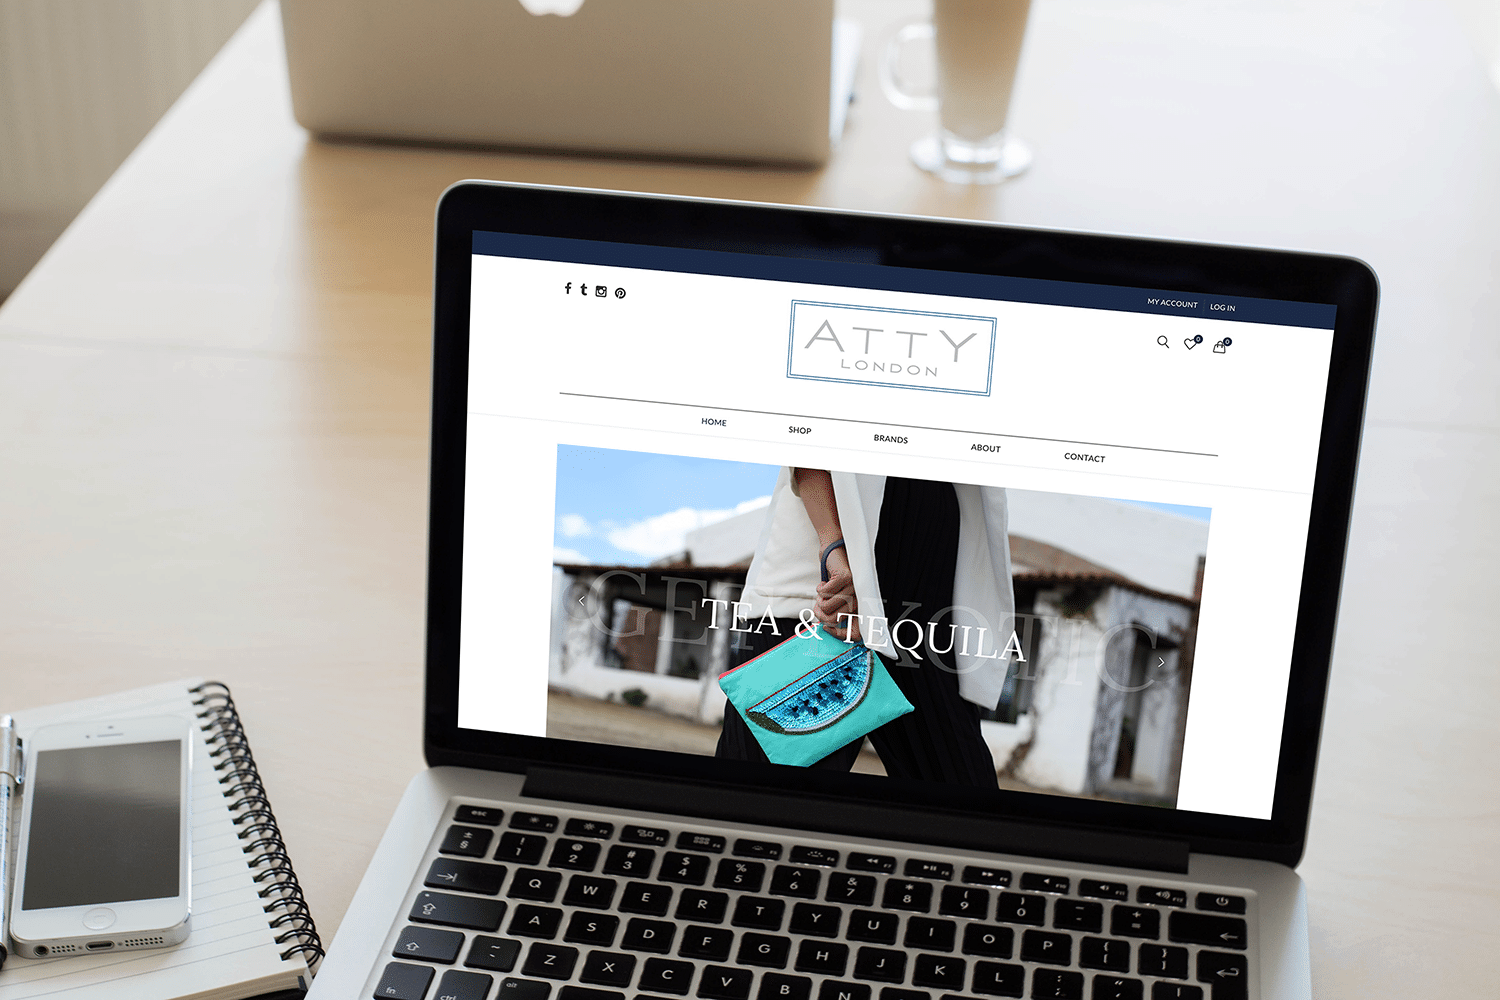 Atty London Web Web Design